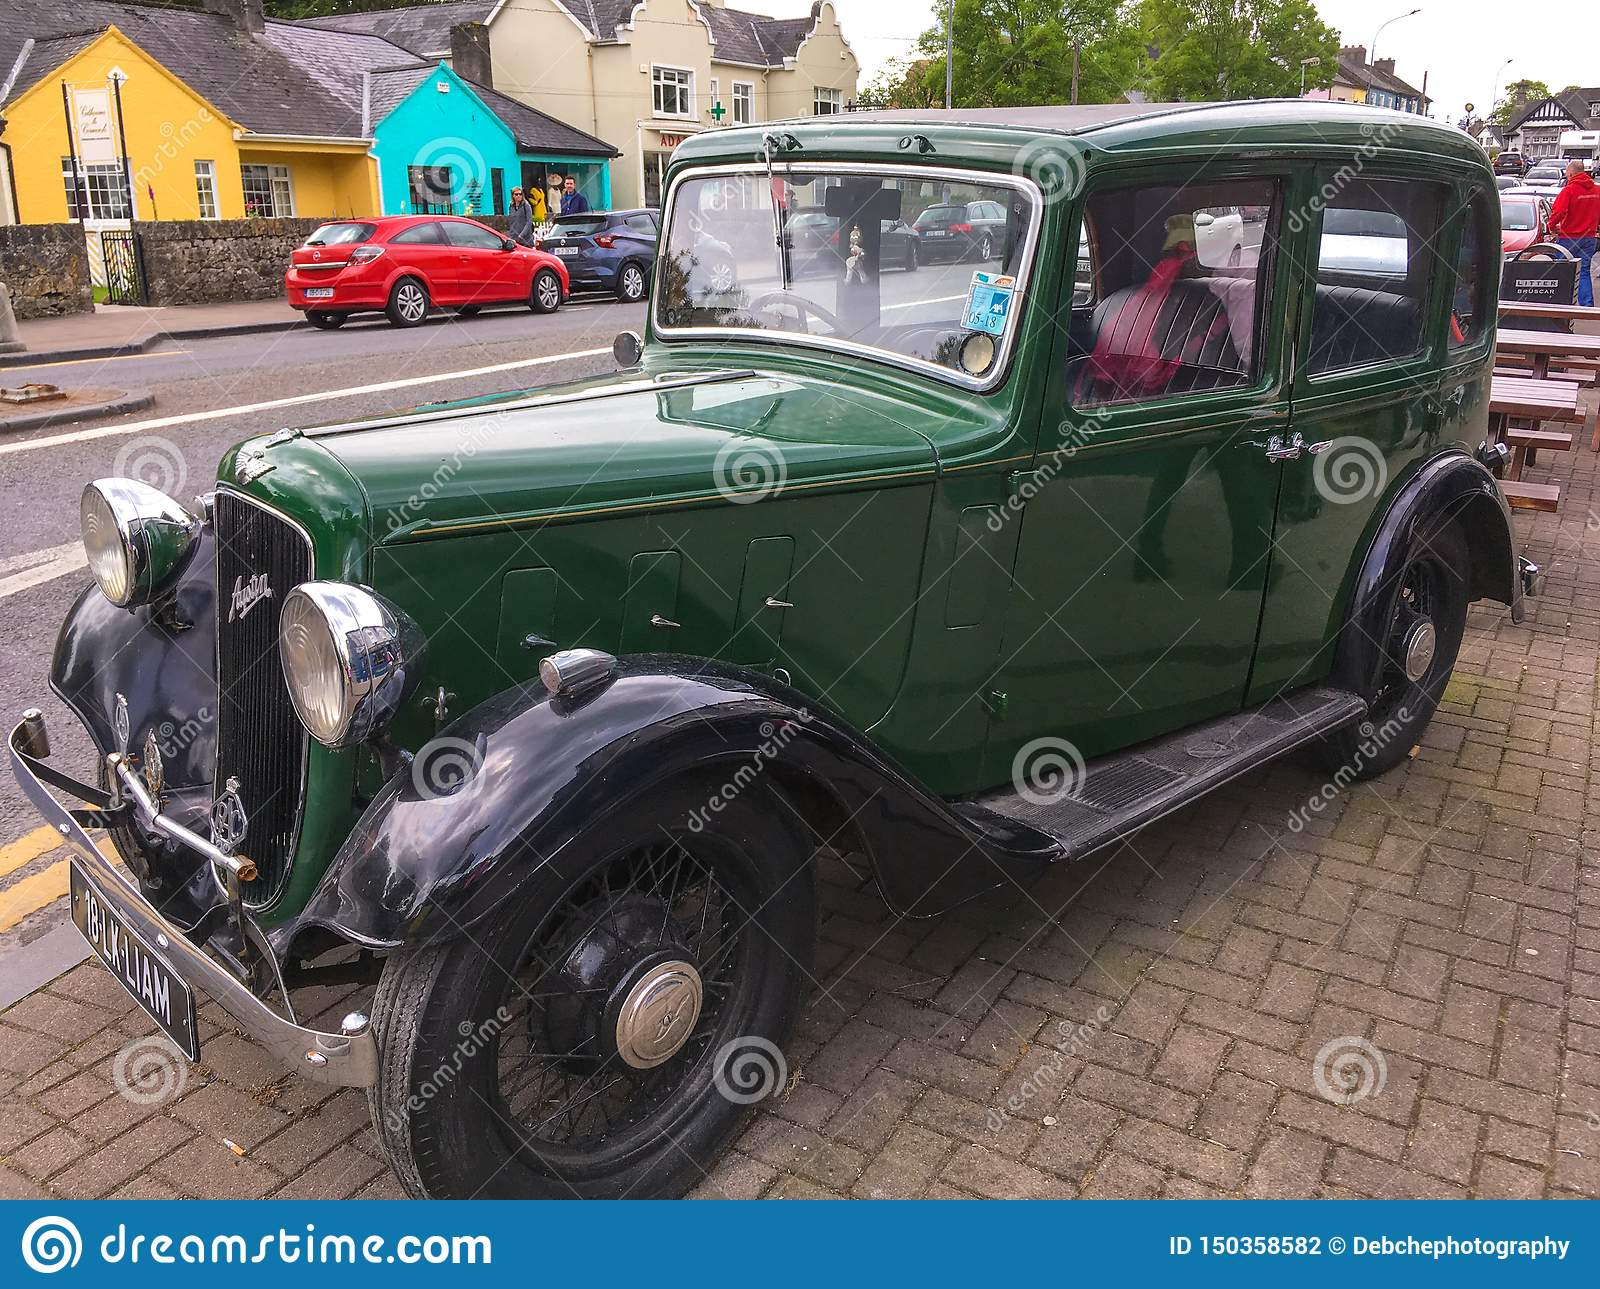 Green Vintage Austin Motor Car Editorial Photography Image Of Convertible Drive 150358582